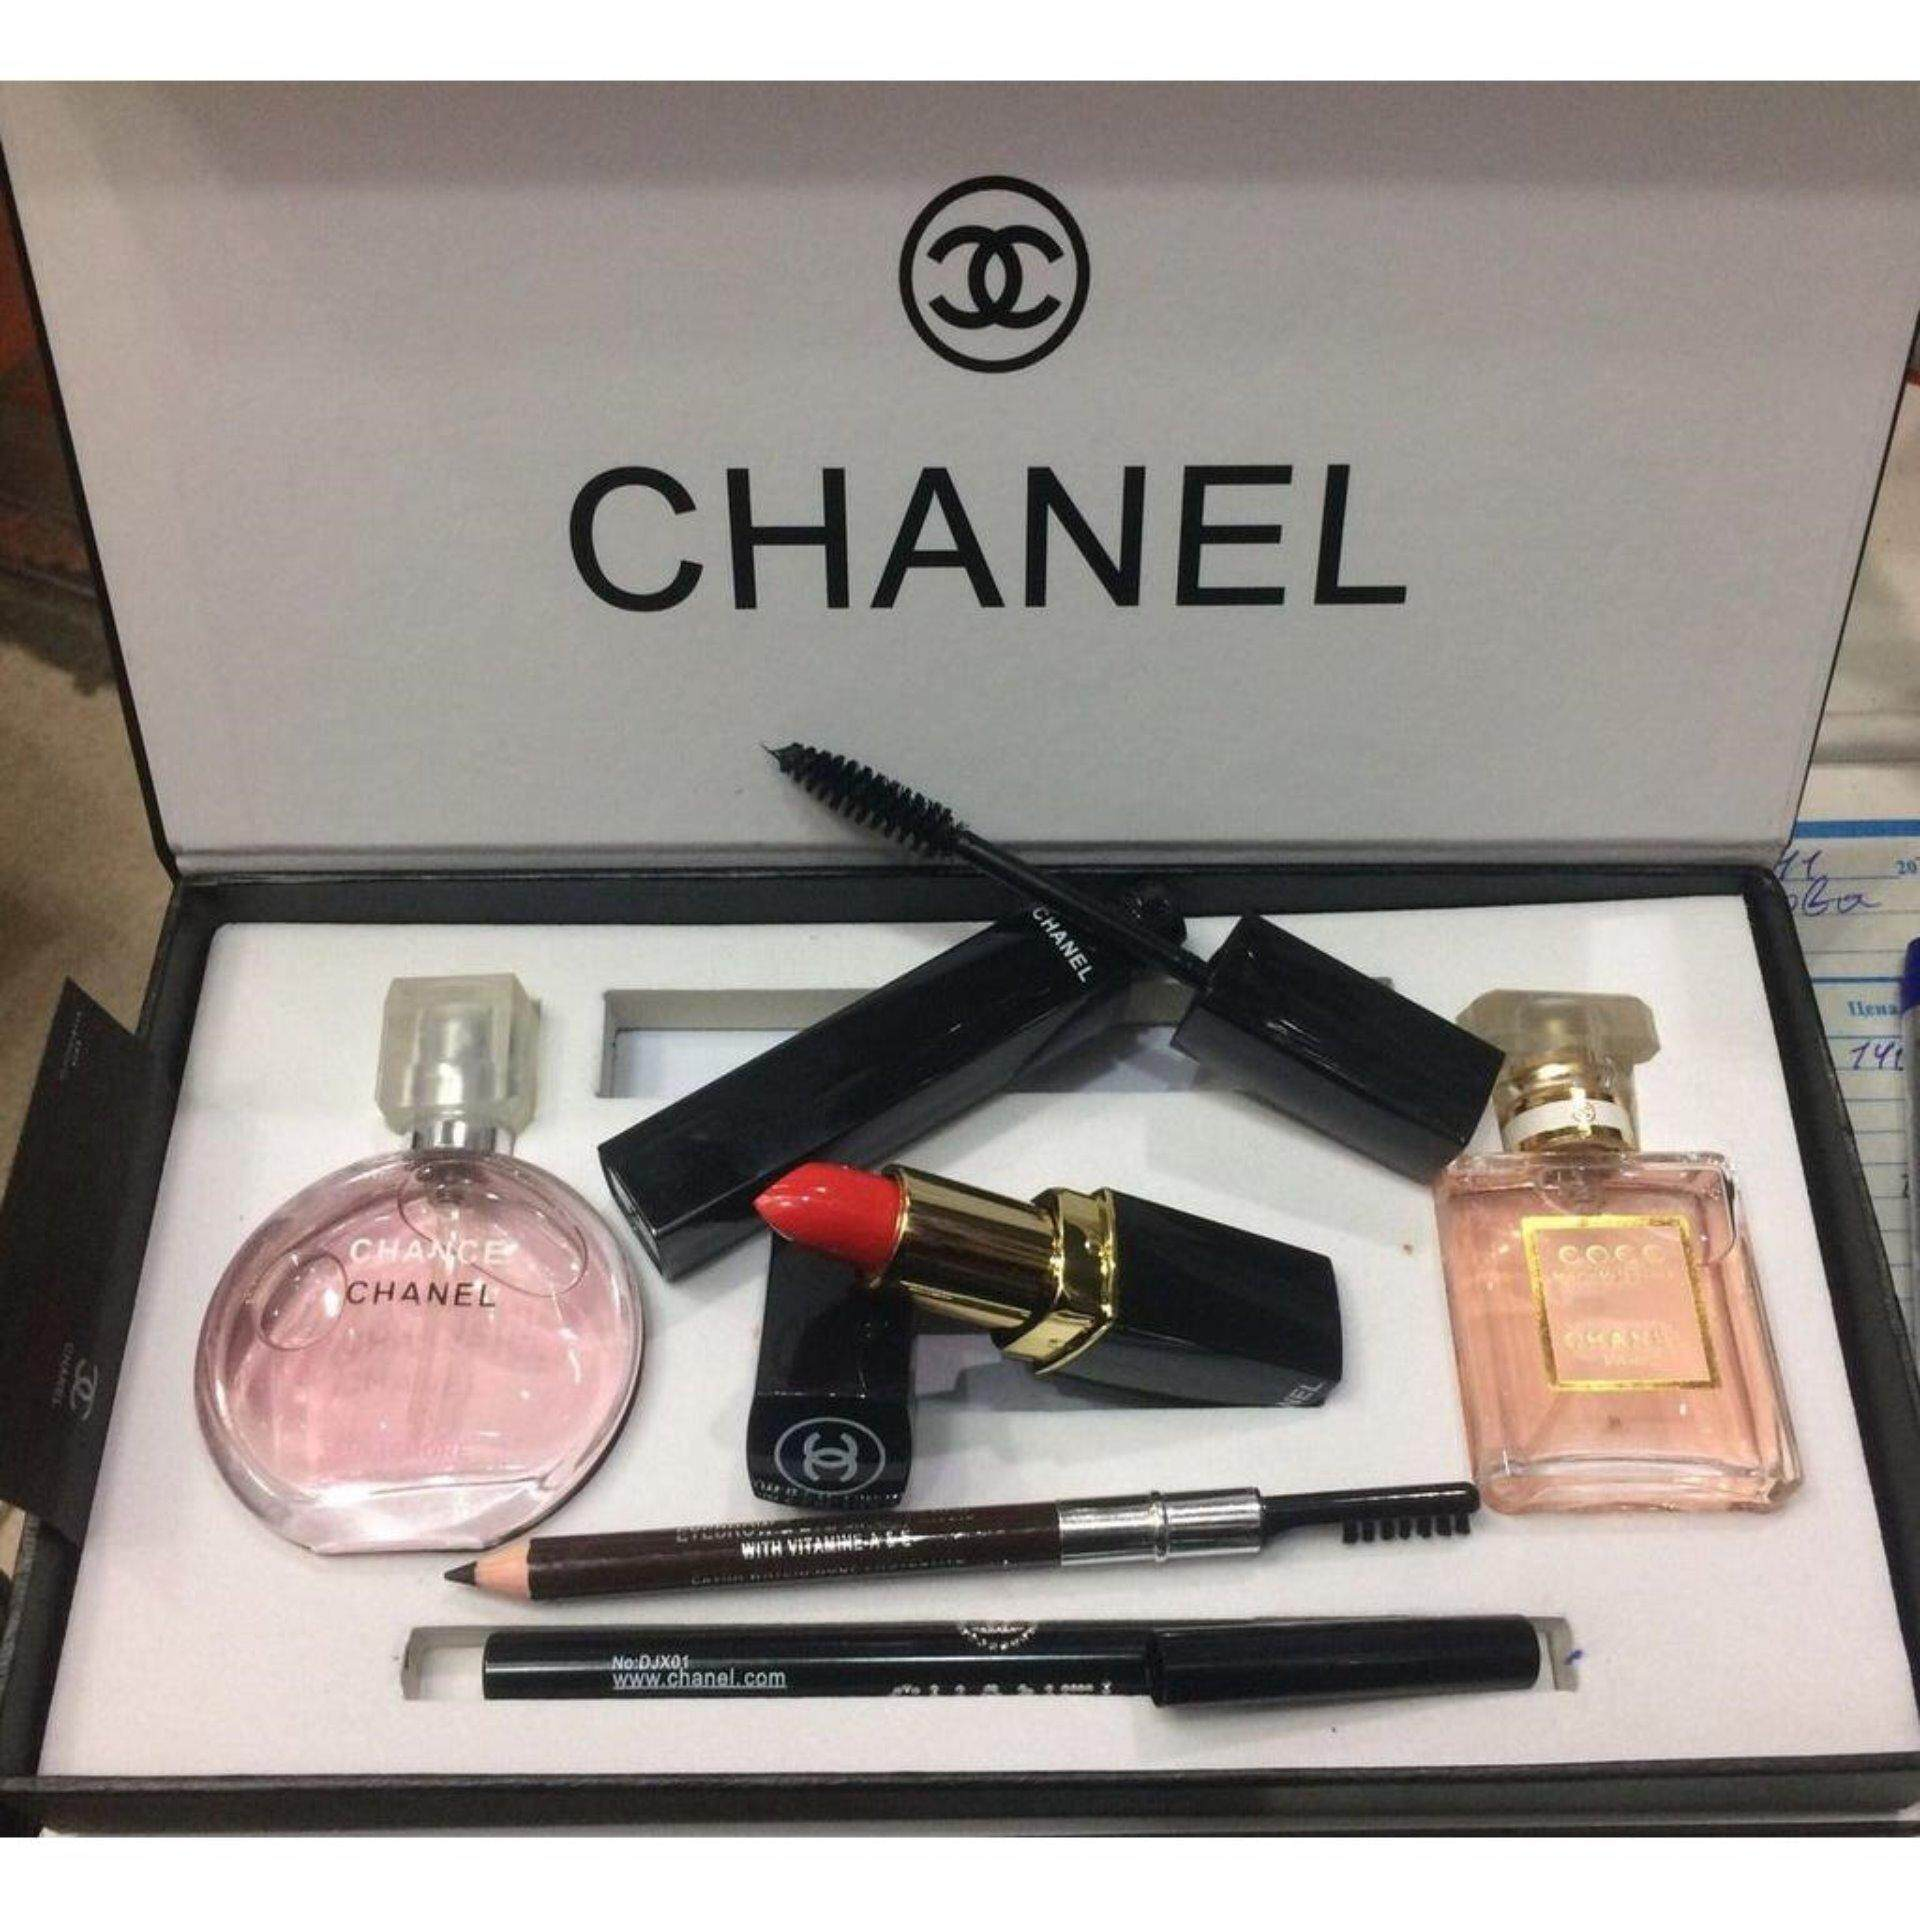 Chanel 5 In 1 Limited Edition Gift Set Chance Chanel 15ml Perfume